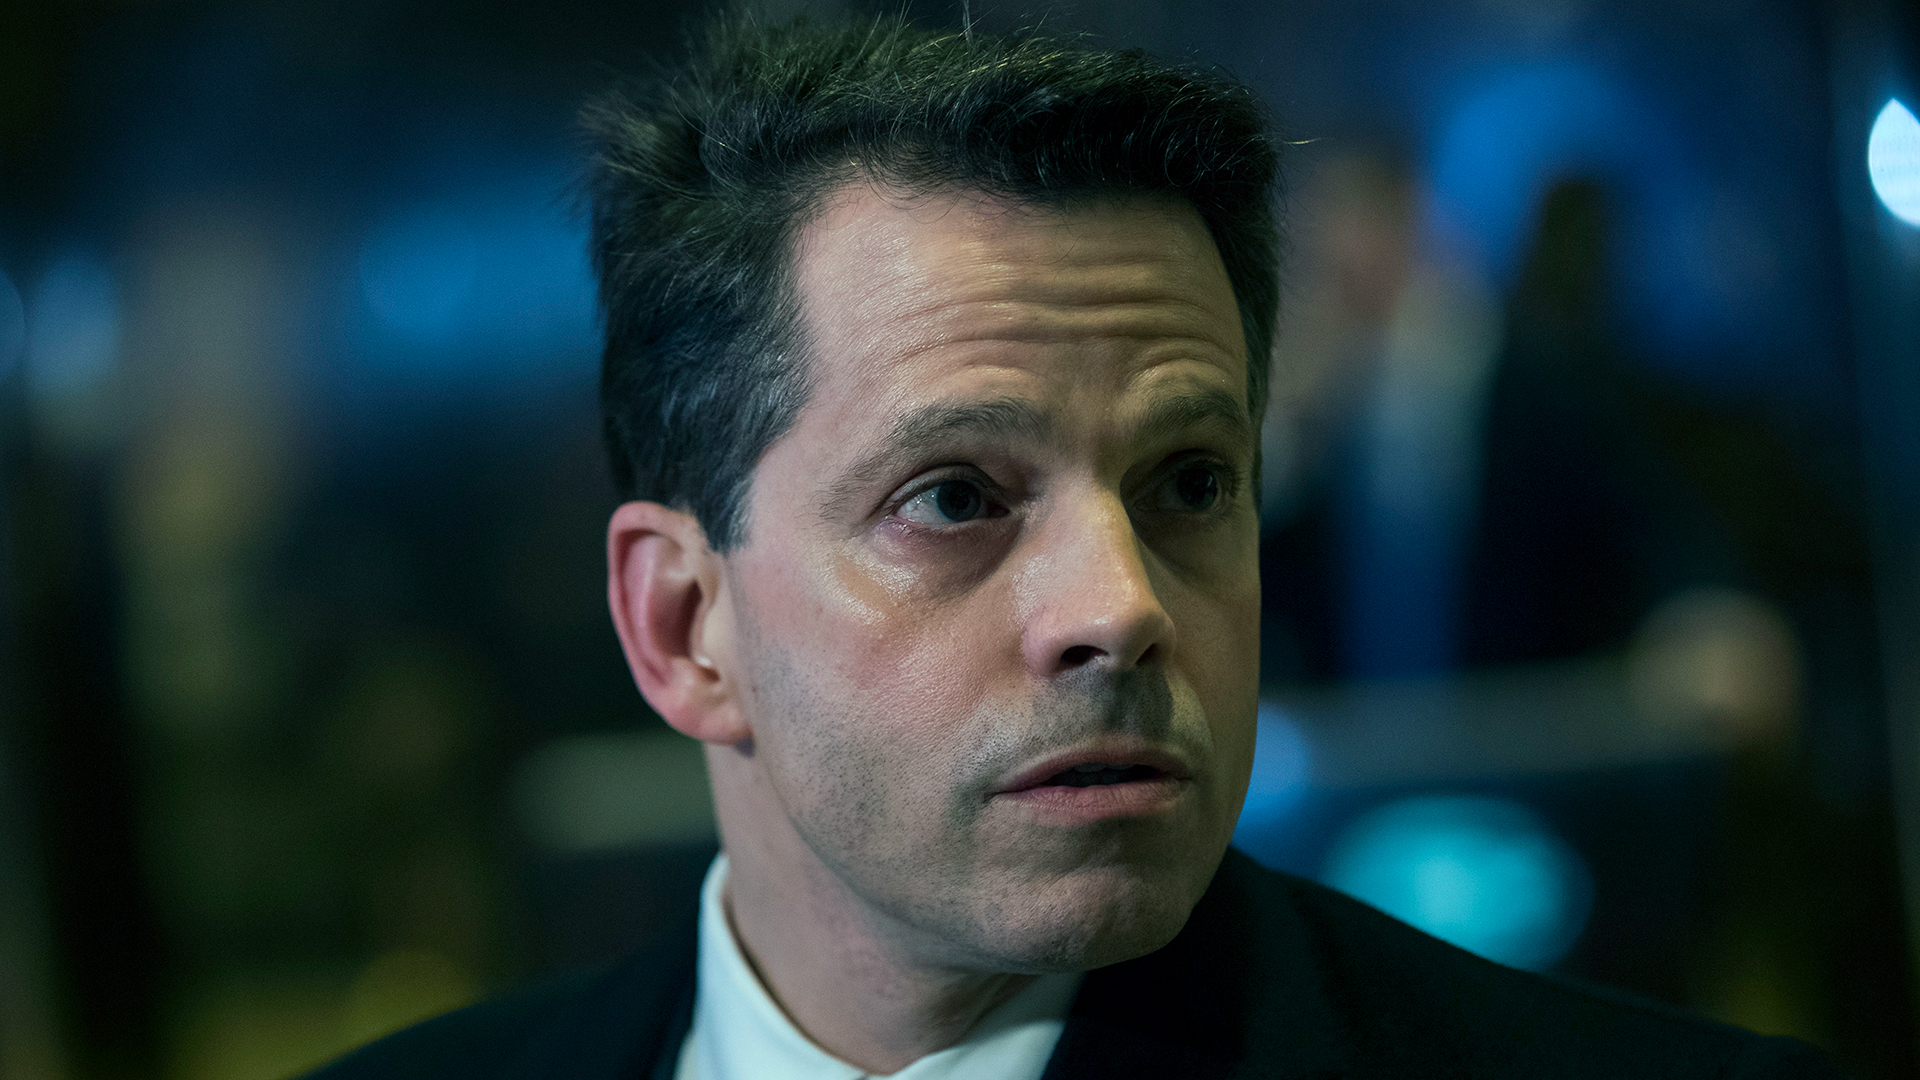 Anthony Scaramucci at Trump Tower-159532.jpg51325820